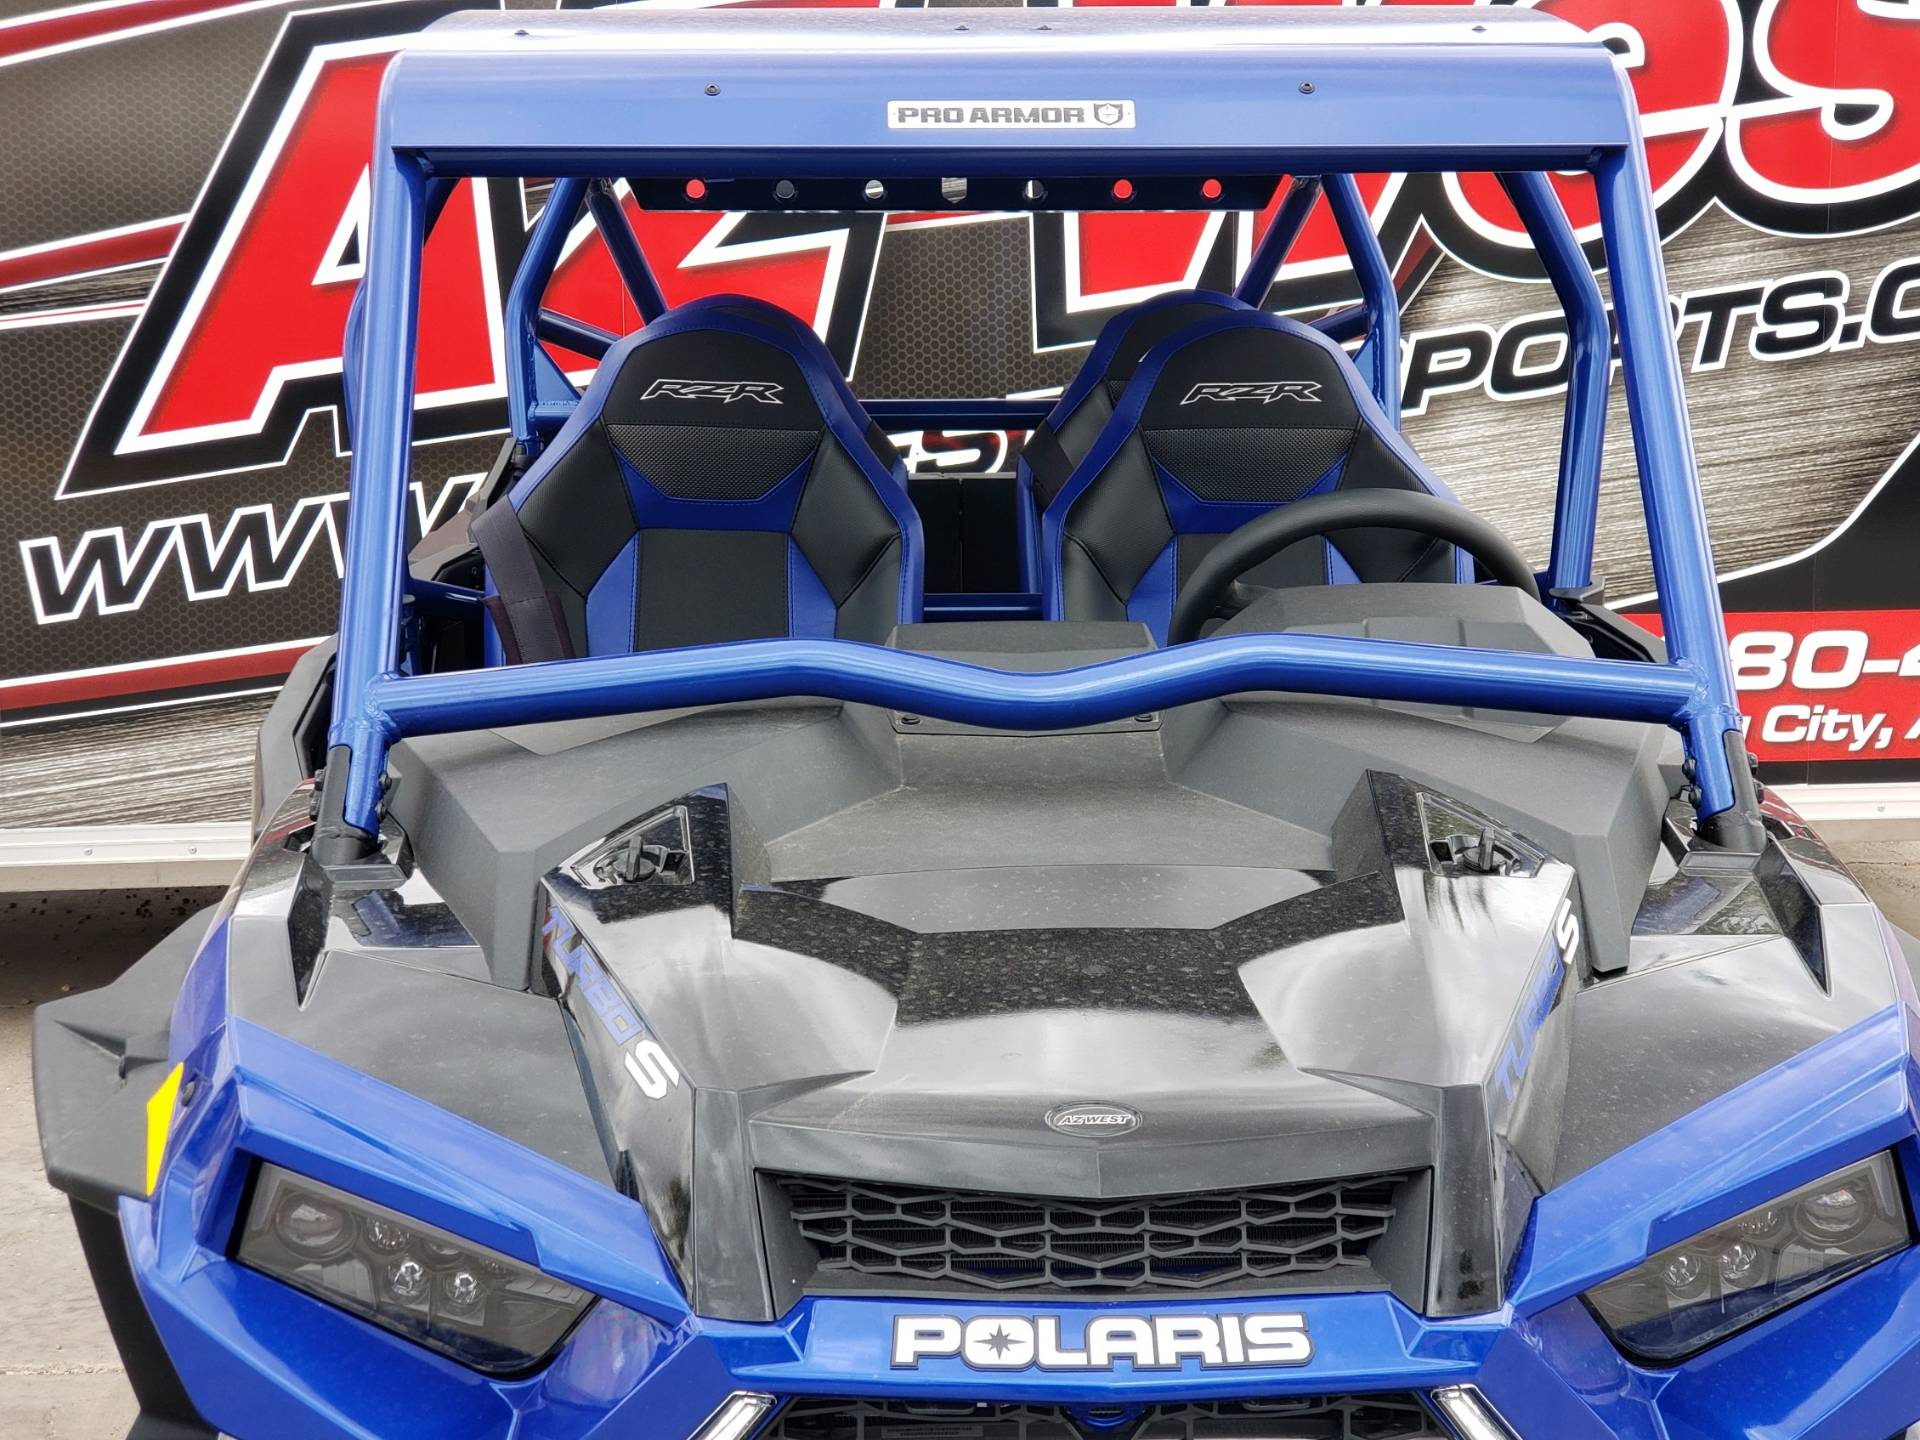 2019 Polaris RZR XP 4 Turbo S in Lake Havasu City, Arizona - Photo 4